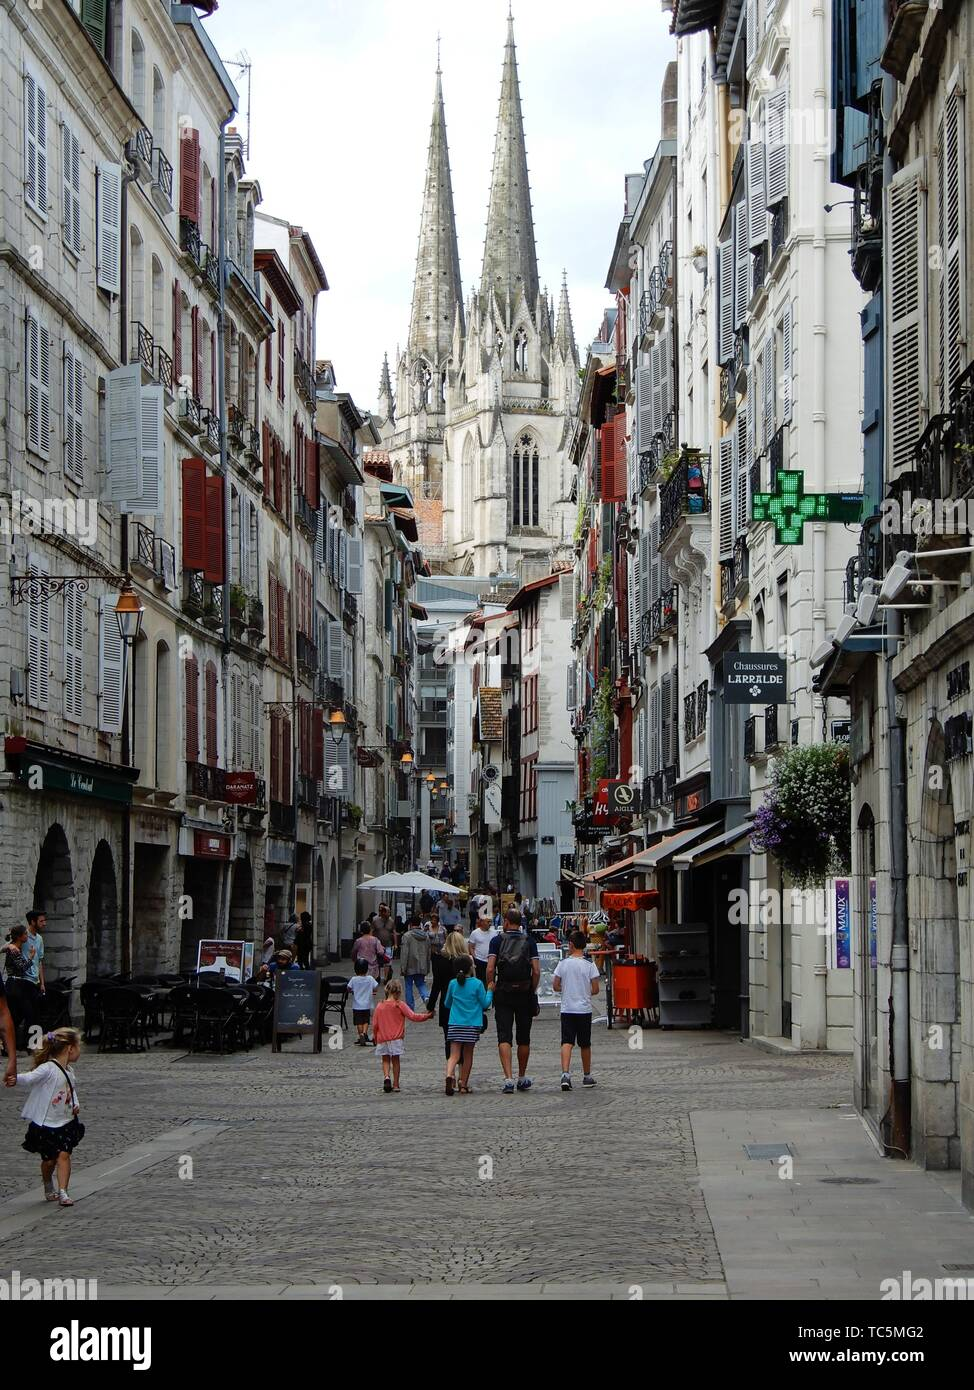 Street Scene with Cathedral of Notre-Dame de Sainte-Marie, Bayonne, France. Stock Photo